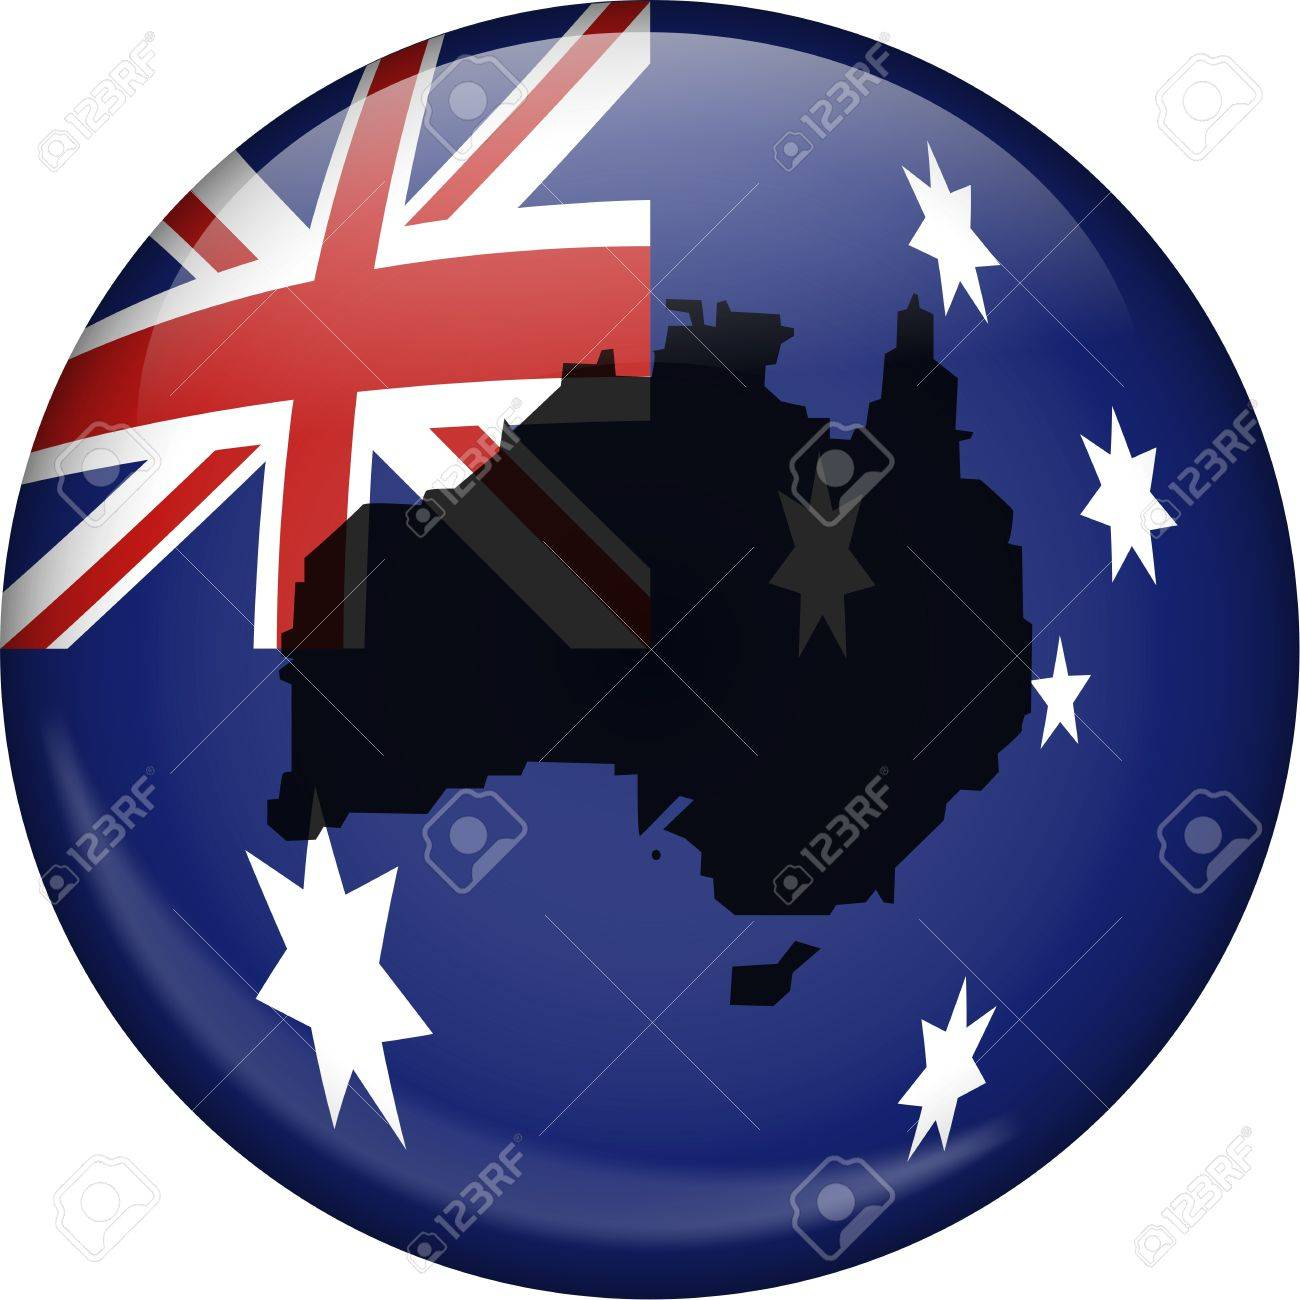 illustration of the flag of australia shaped like a globe with